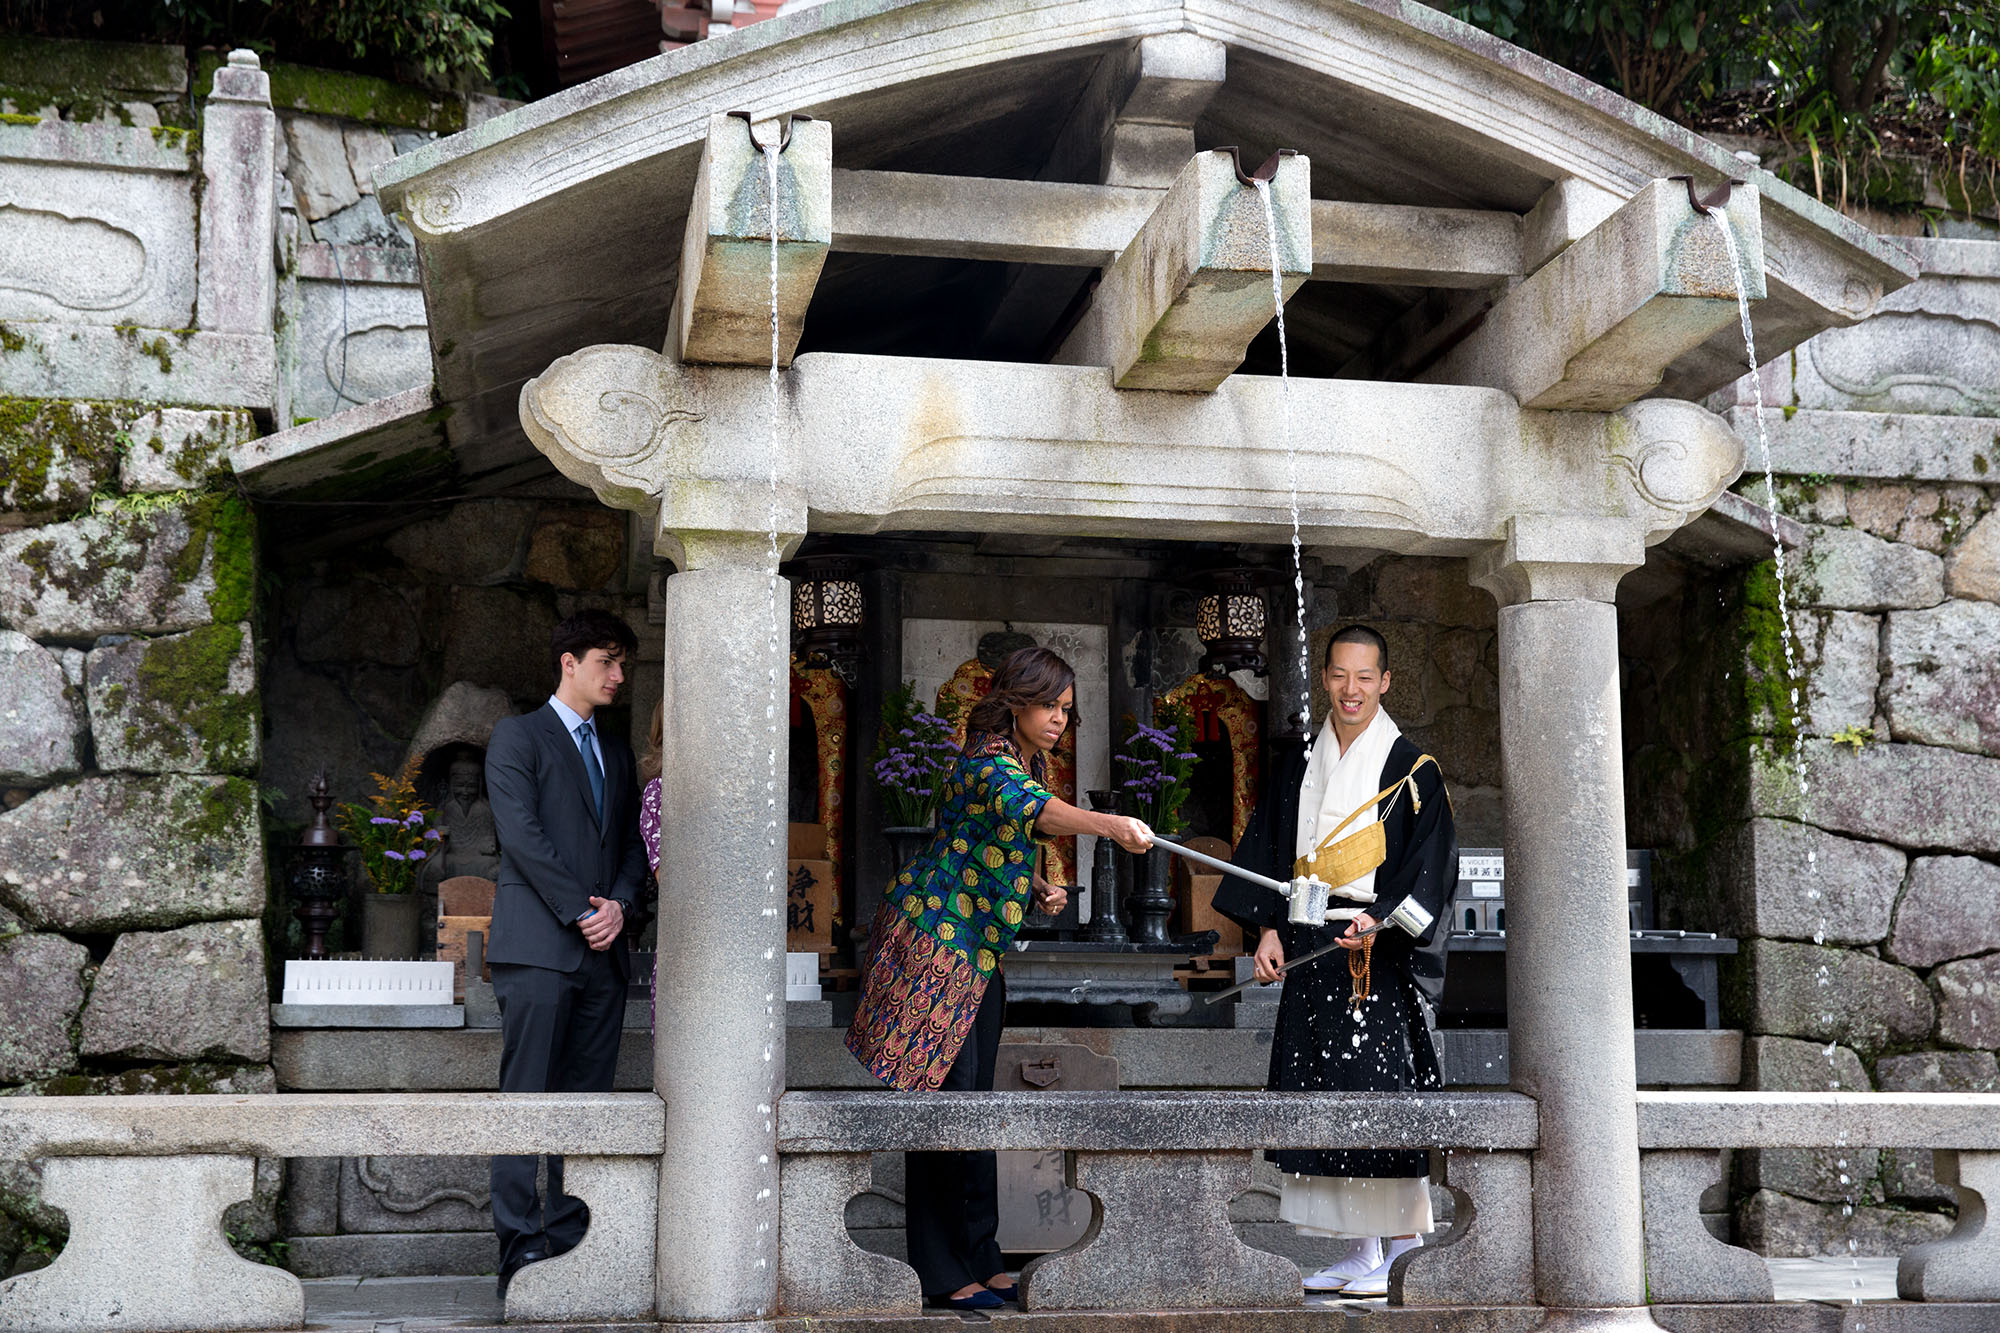 The First Lady participates in the ritual of cleaning the hands and drinking from Otowa Waterfall. (Official White House Photo by Amanda Lucidon)